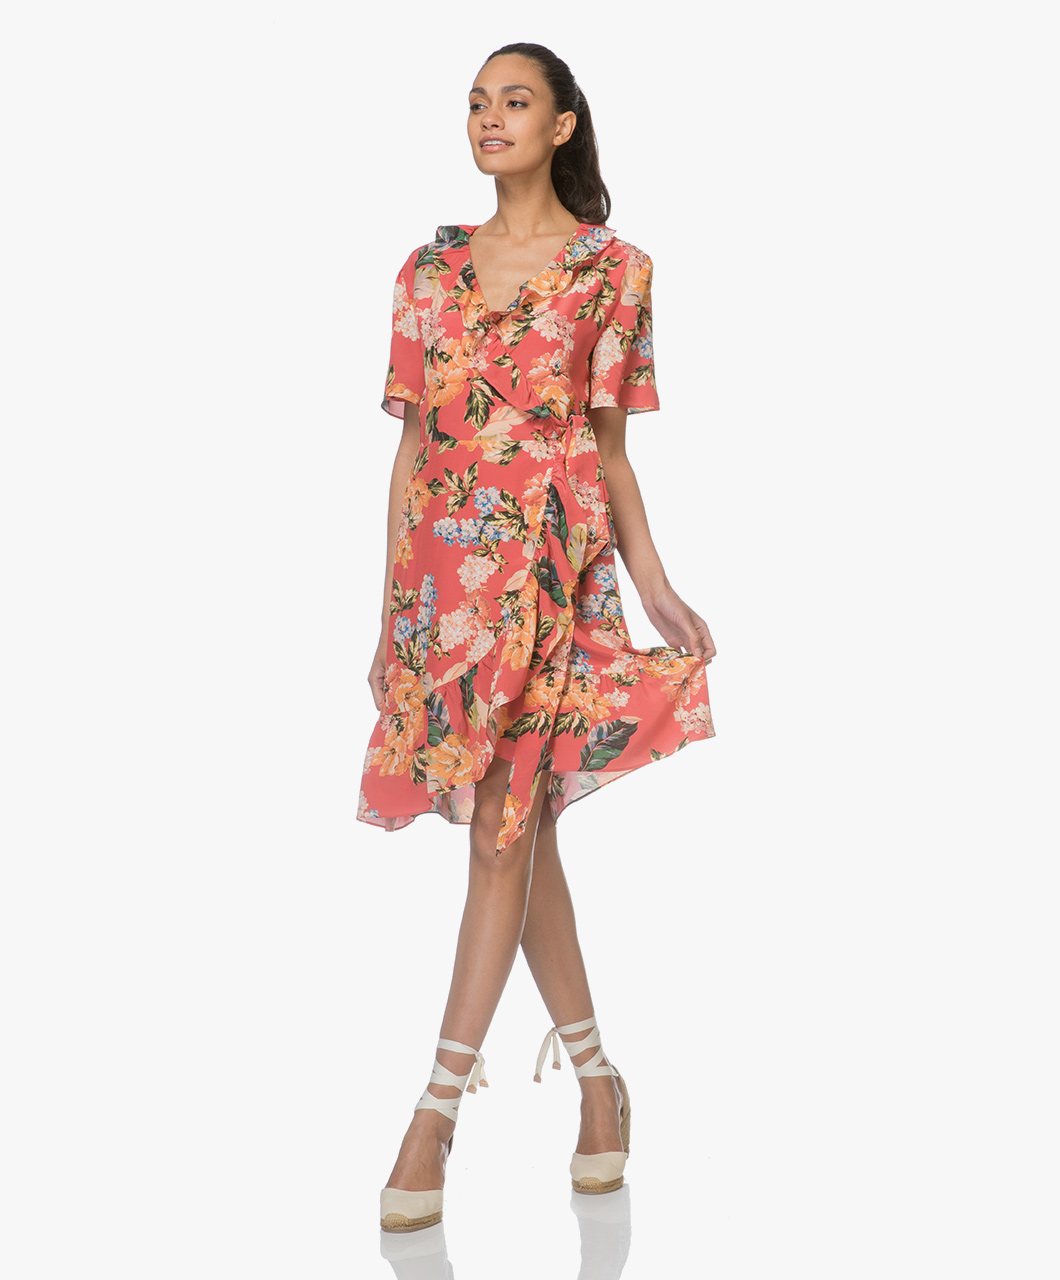 Fwss Synne Silk Floral Dress The Tropical Red Fwss